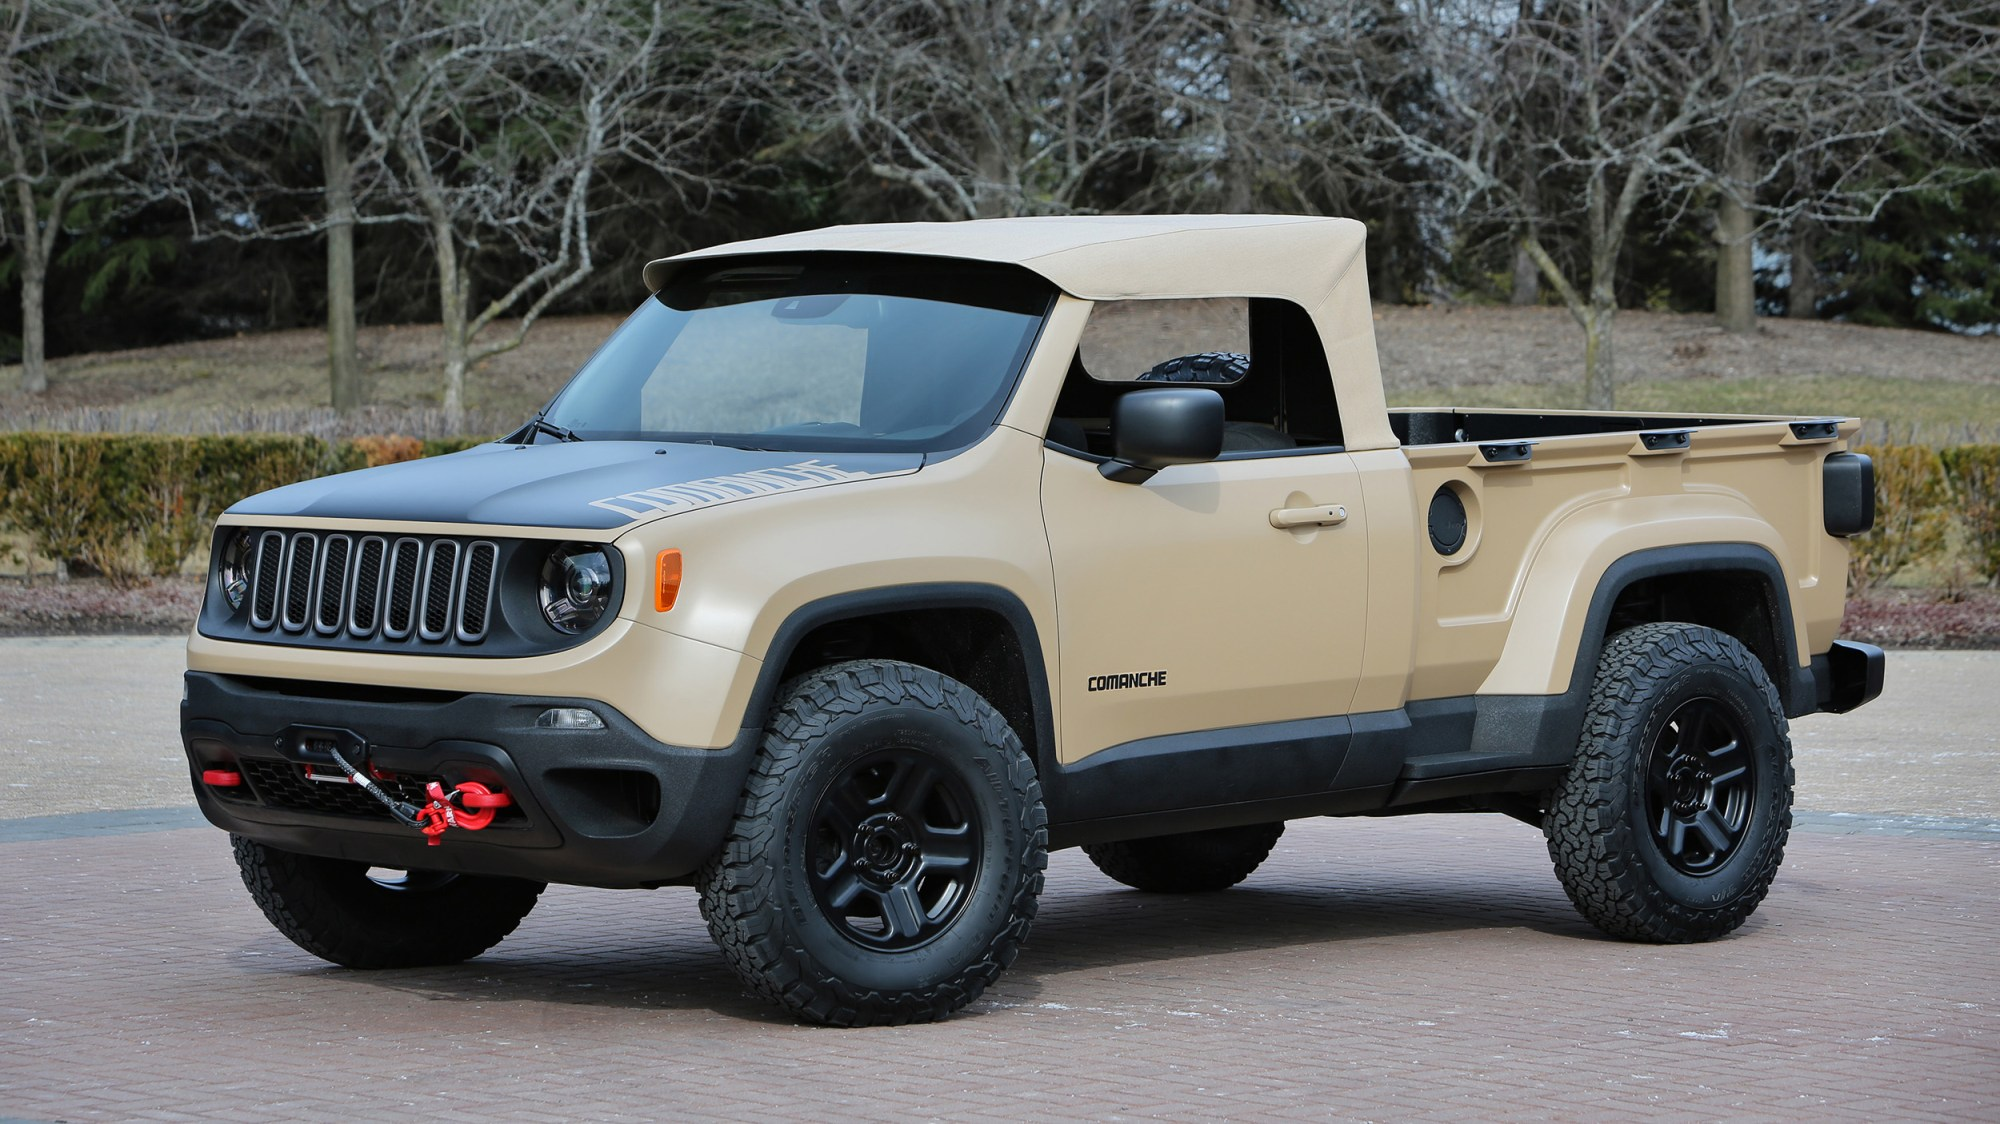 hight resolution of 2015 jeep easter safari concepts photo gallery autoblog jeep mass air flow sensor jeep gladiator fuse